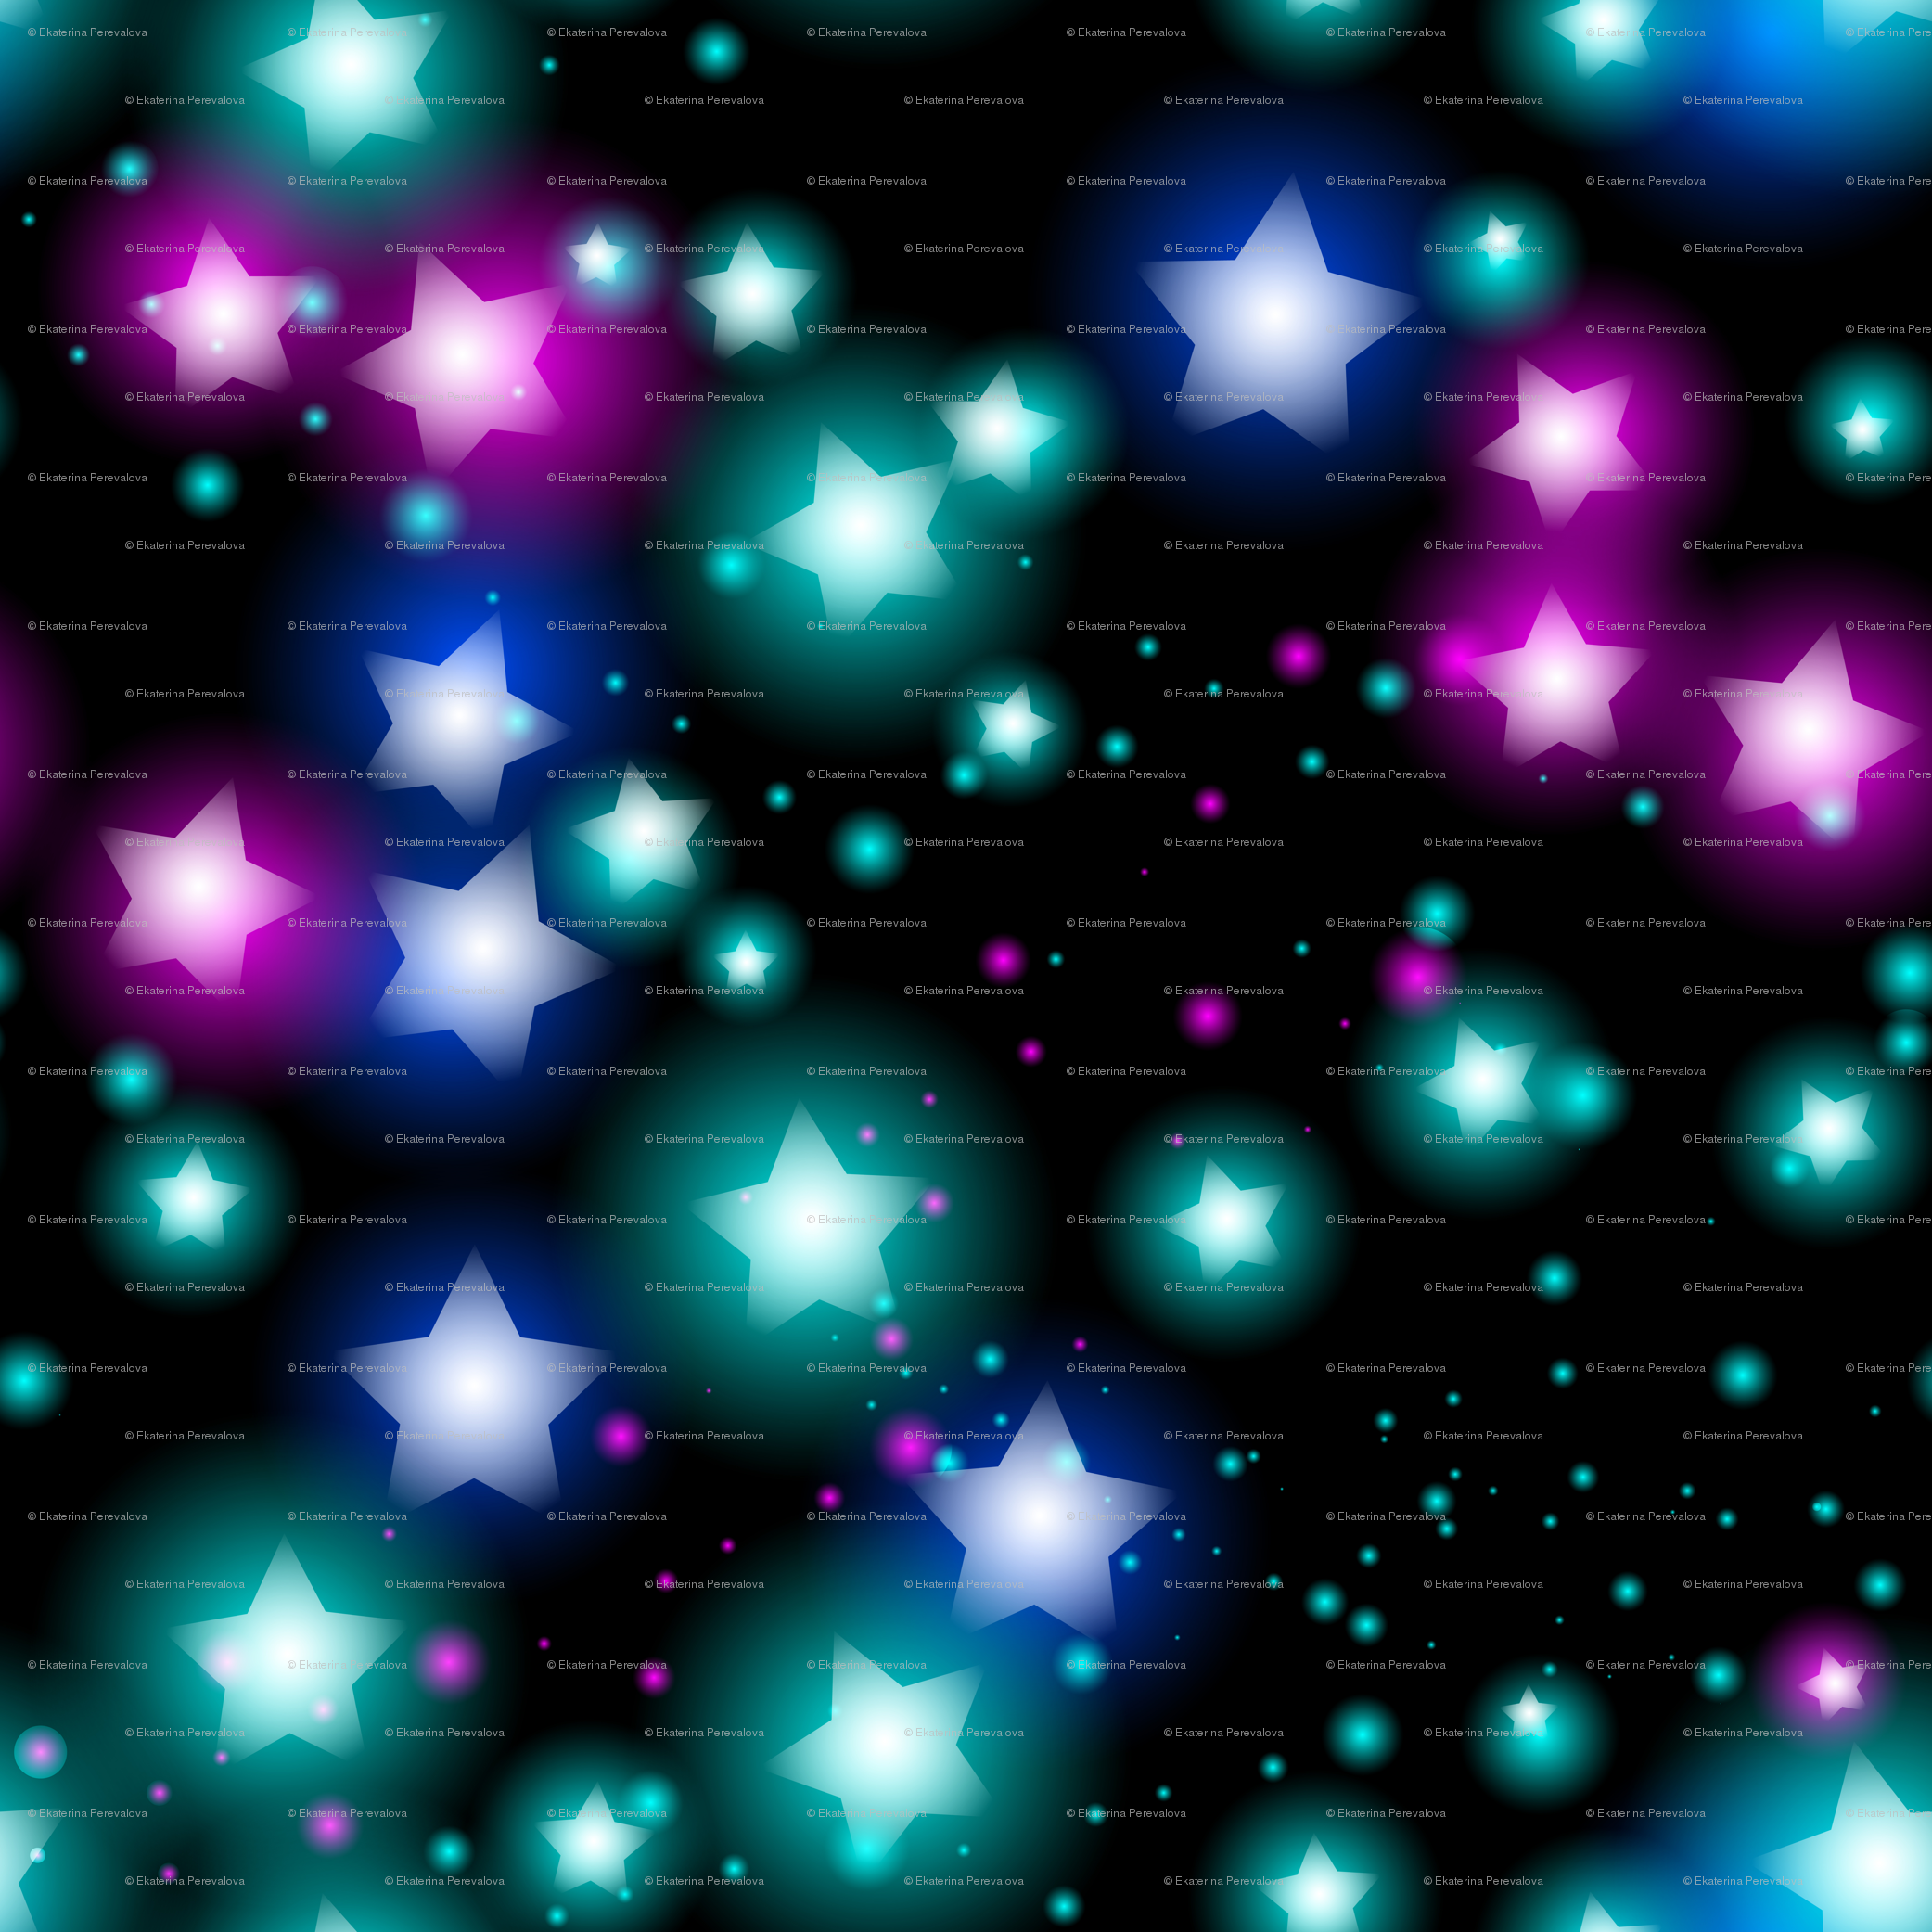 Marvelous Abstract Starry Pattern With Neon Star On Black Background Download Free Architecture Designs Intelgarnamadebymaigaardcom